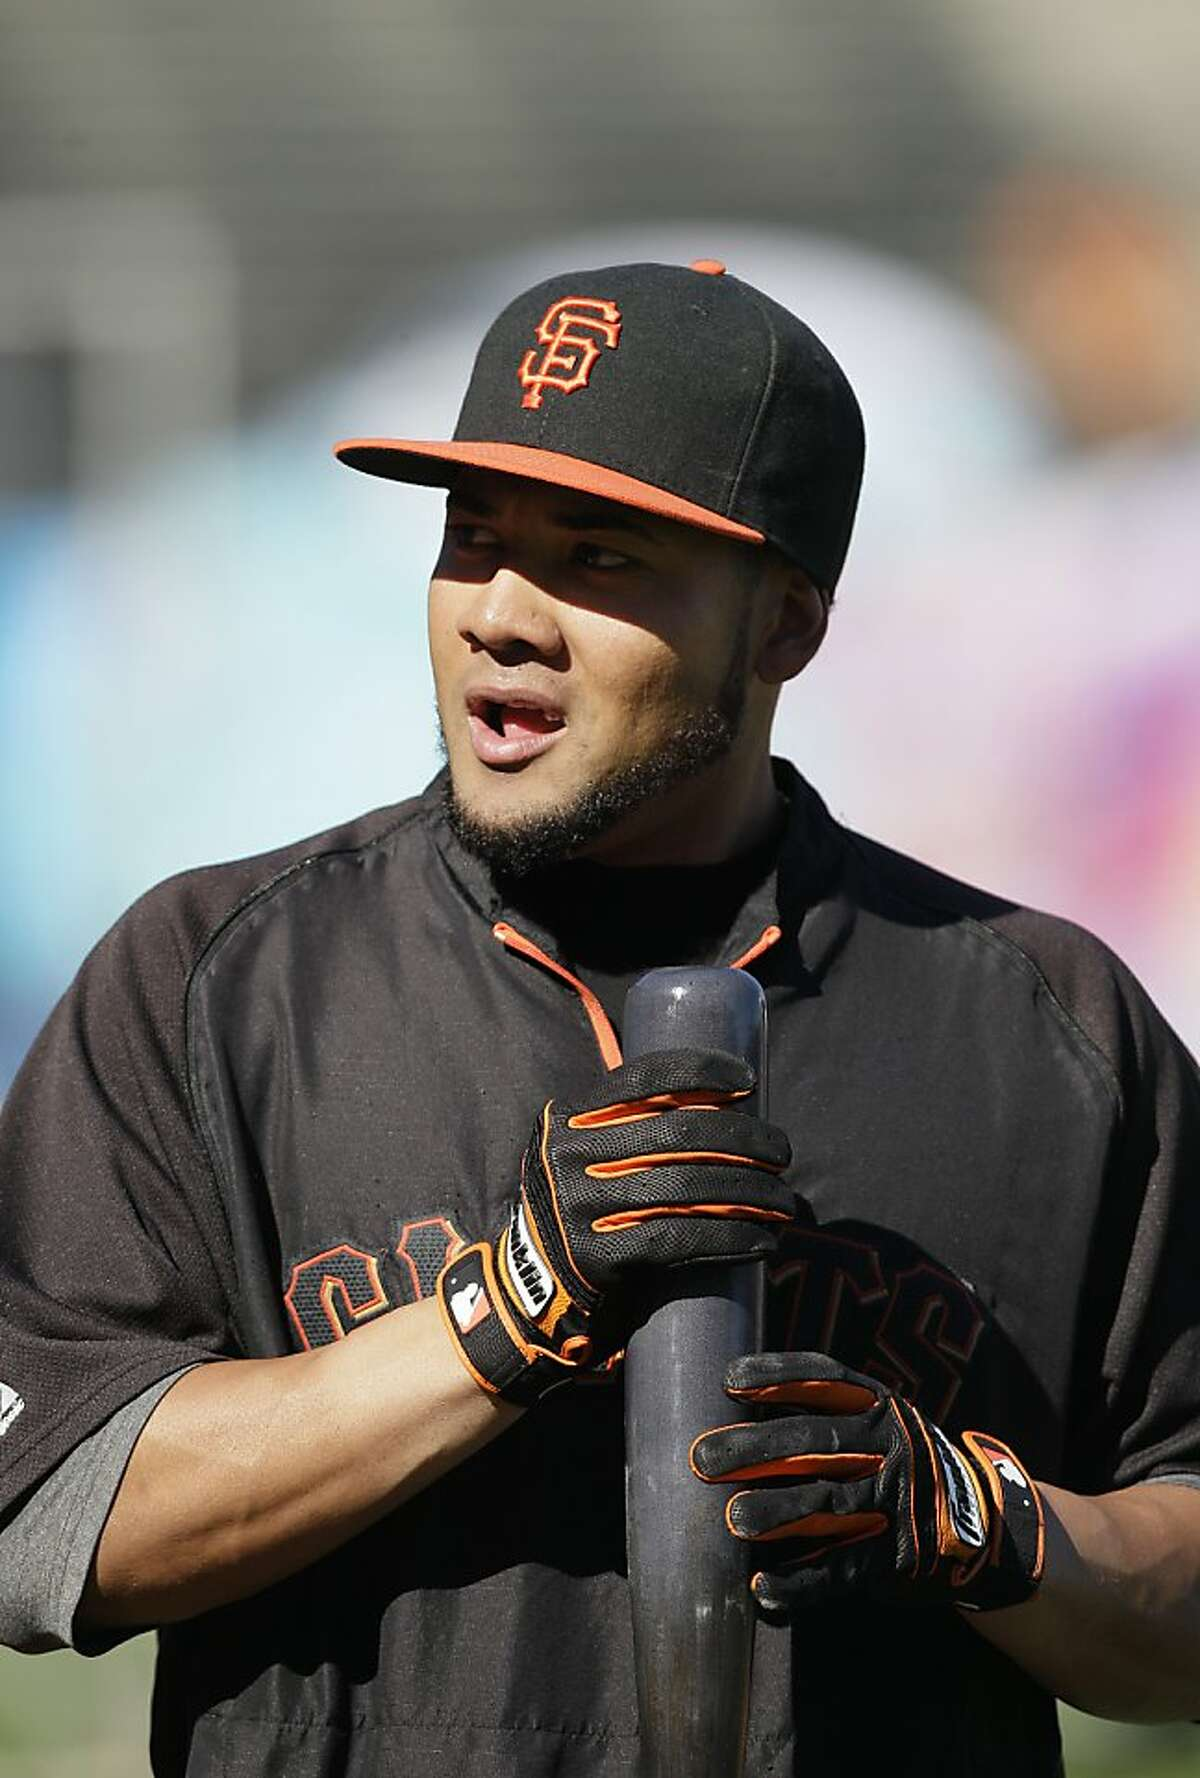 San Francisco Giants center fielder Melky Cabrera (53) before a baseball game against the Los Angeles Dodgers in San Francisco, Friday, July 27, 2012. (AP Photo/Jeff Chiu)